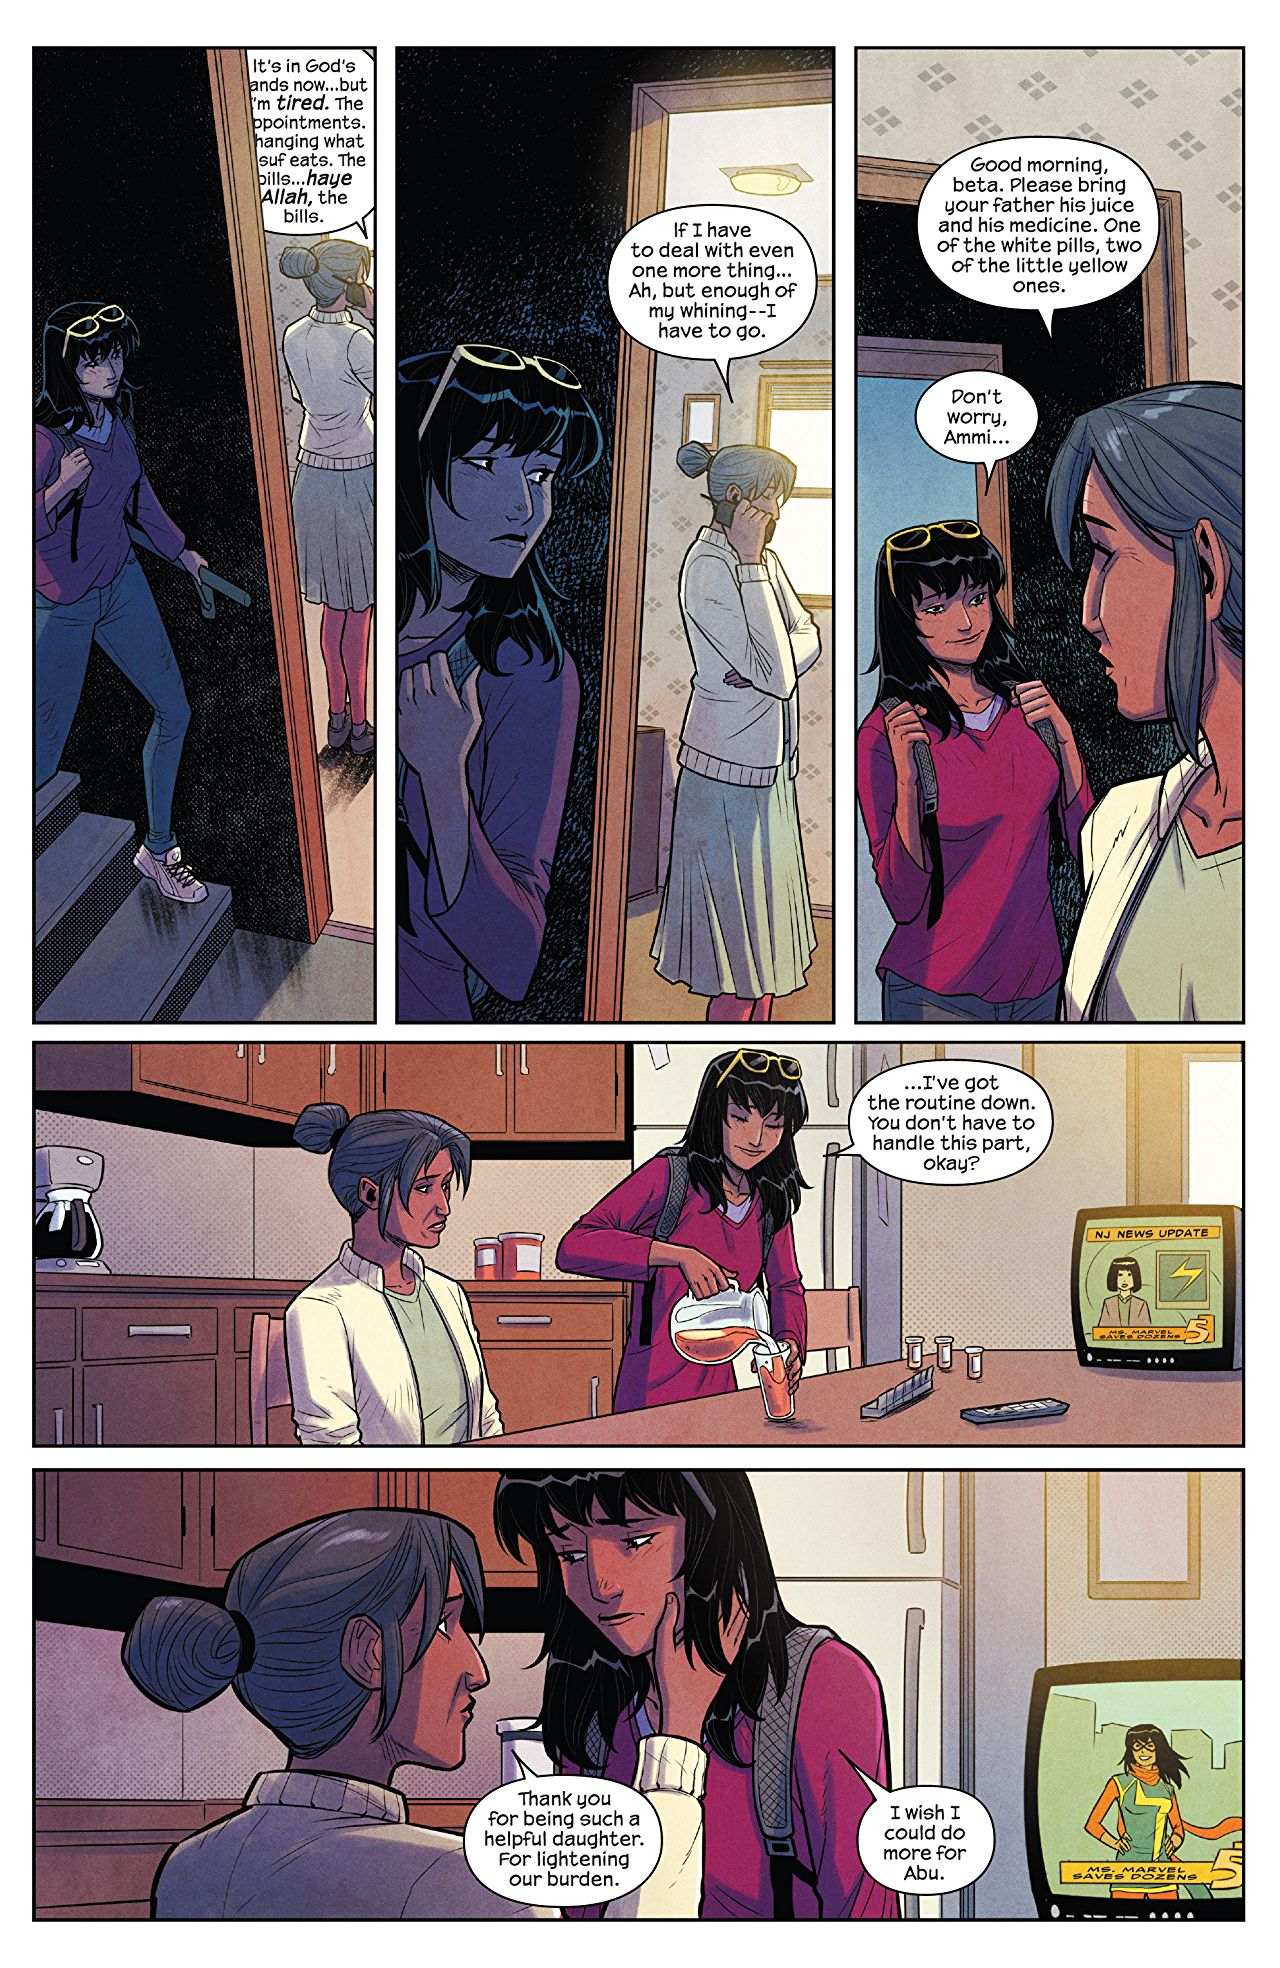 The Magnificent Ms Marvel #7: Page 2, Kamala gets ready for school.